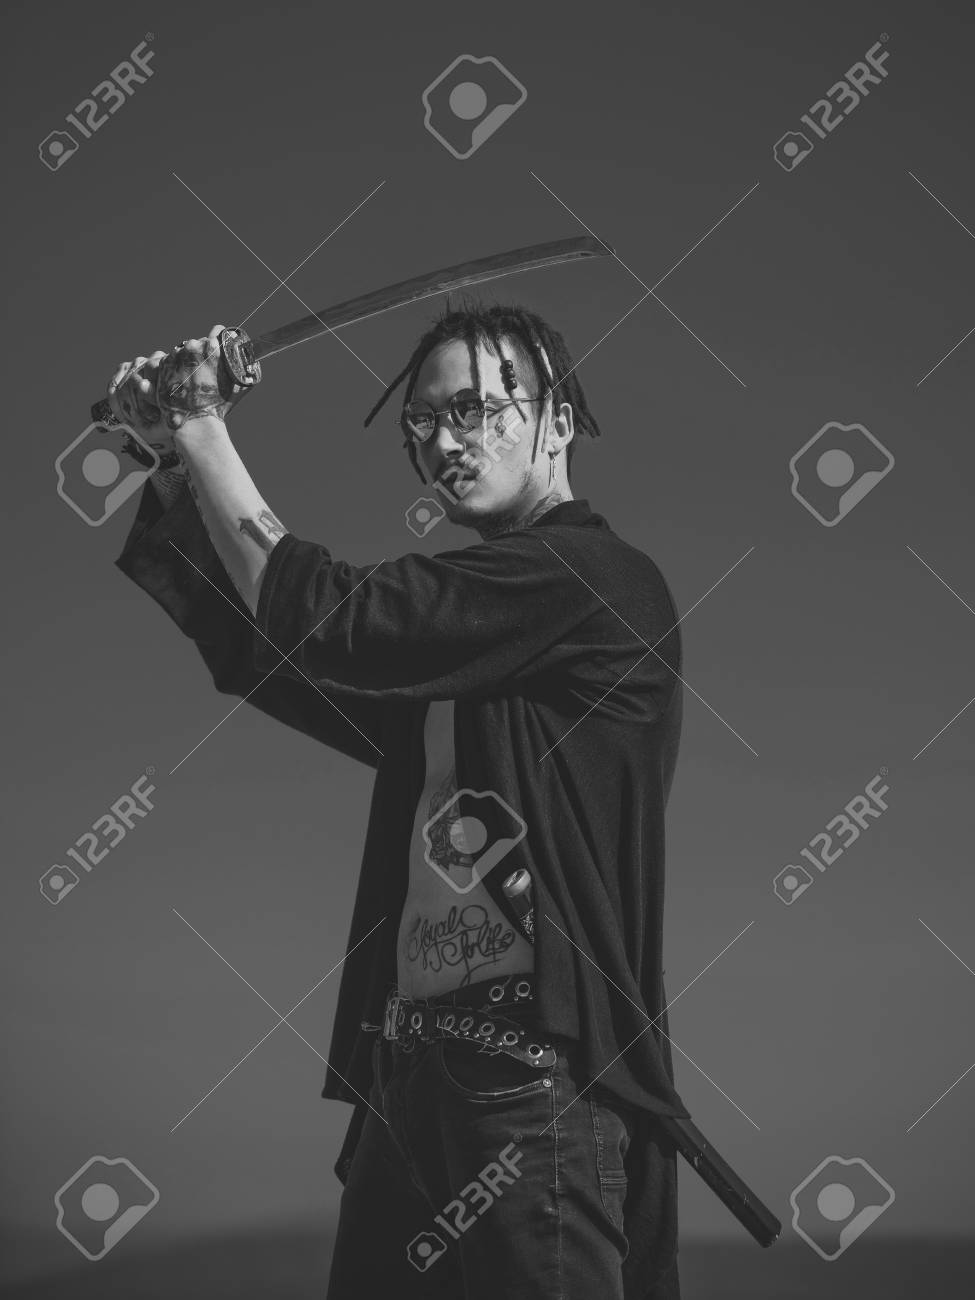 Samurai And Japan Weapon Stock Photo Picture And Royalty Free Image Image 101522344